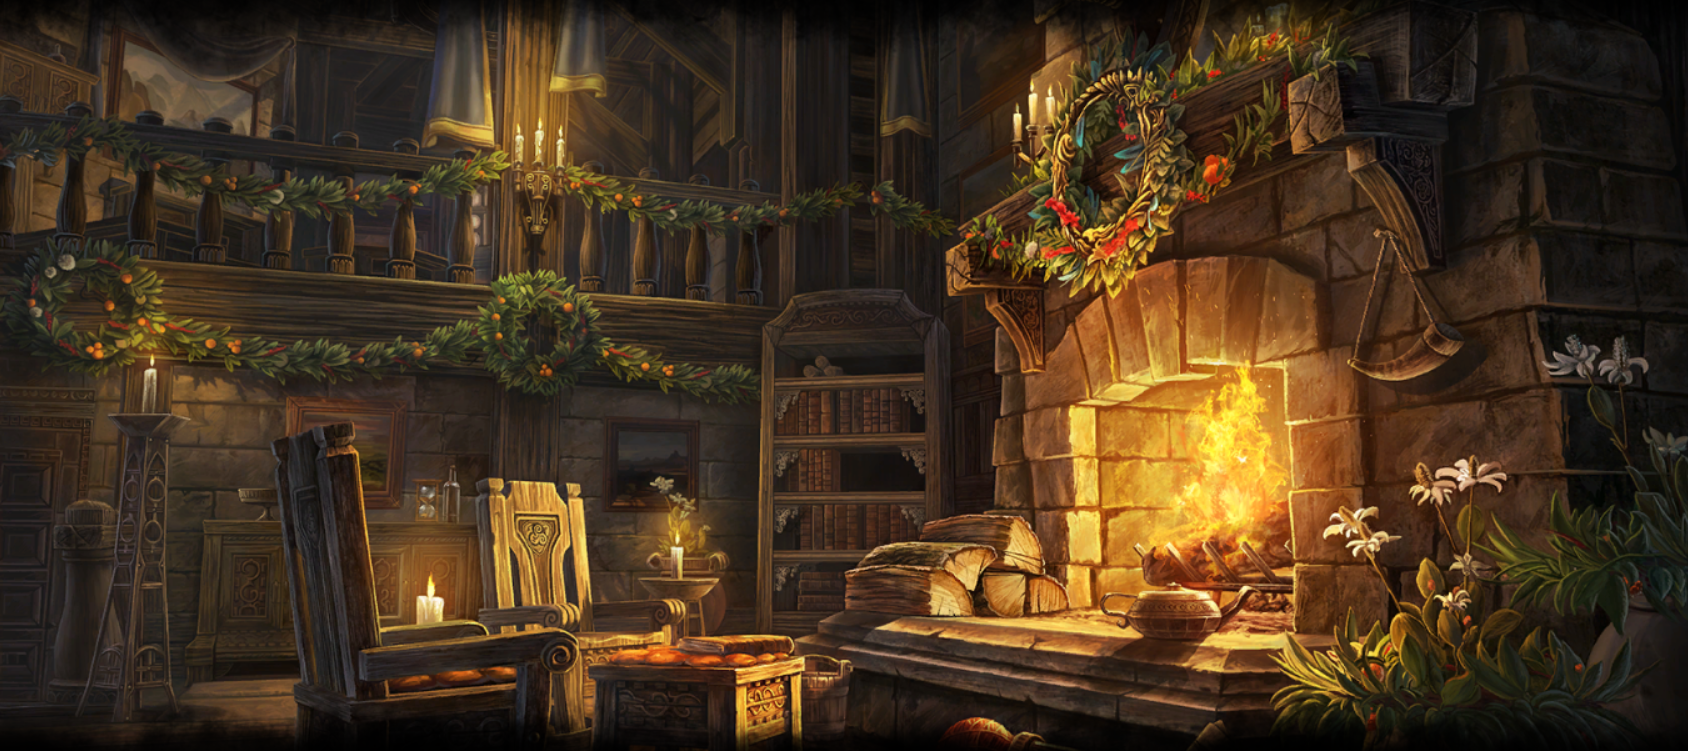 ESO housing loading screen - Enchanted Snow Globe House